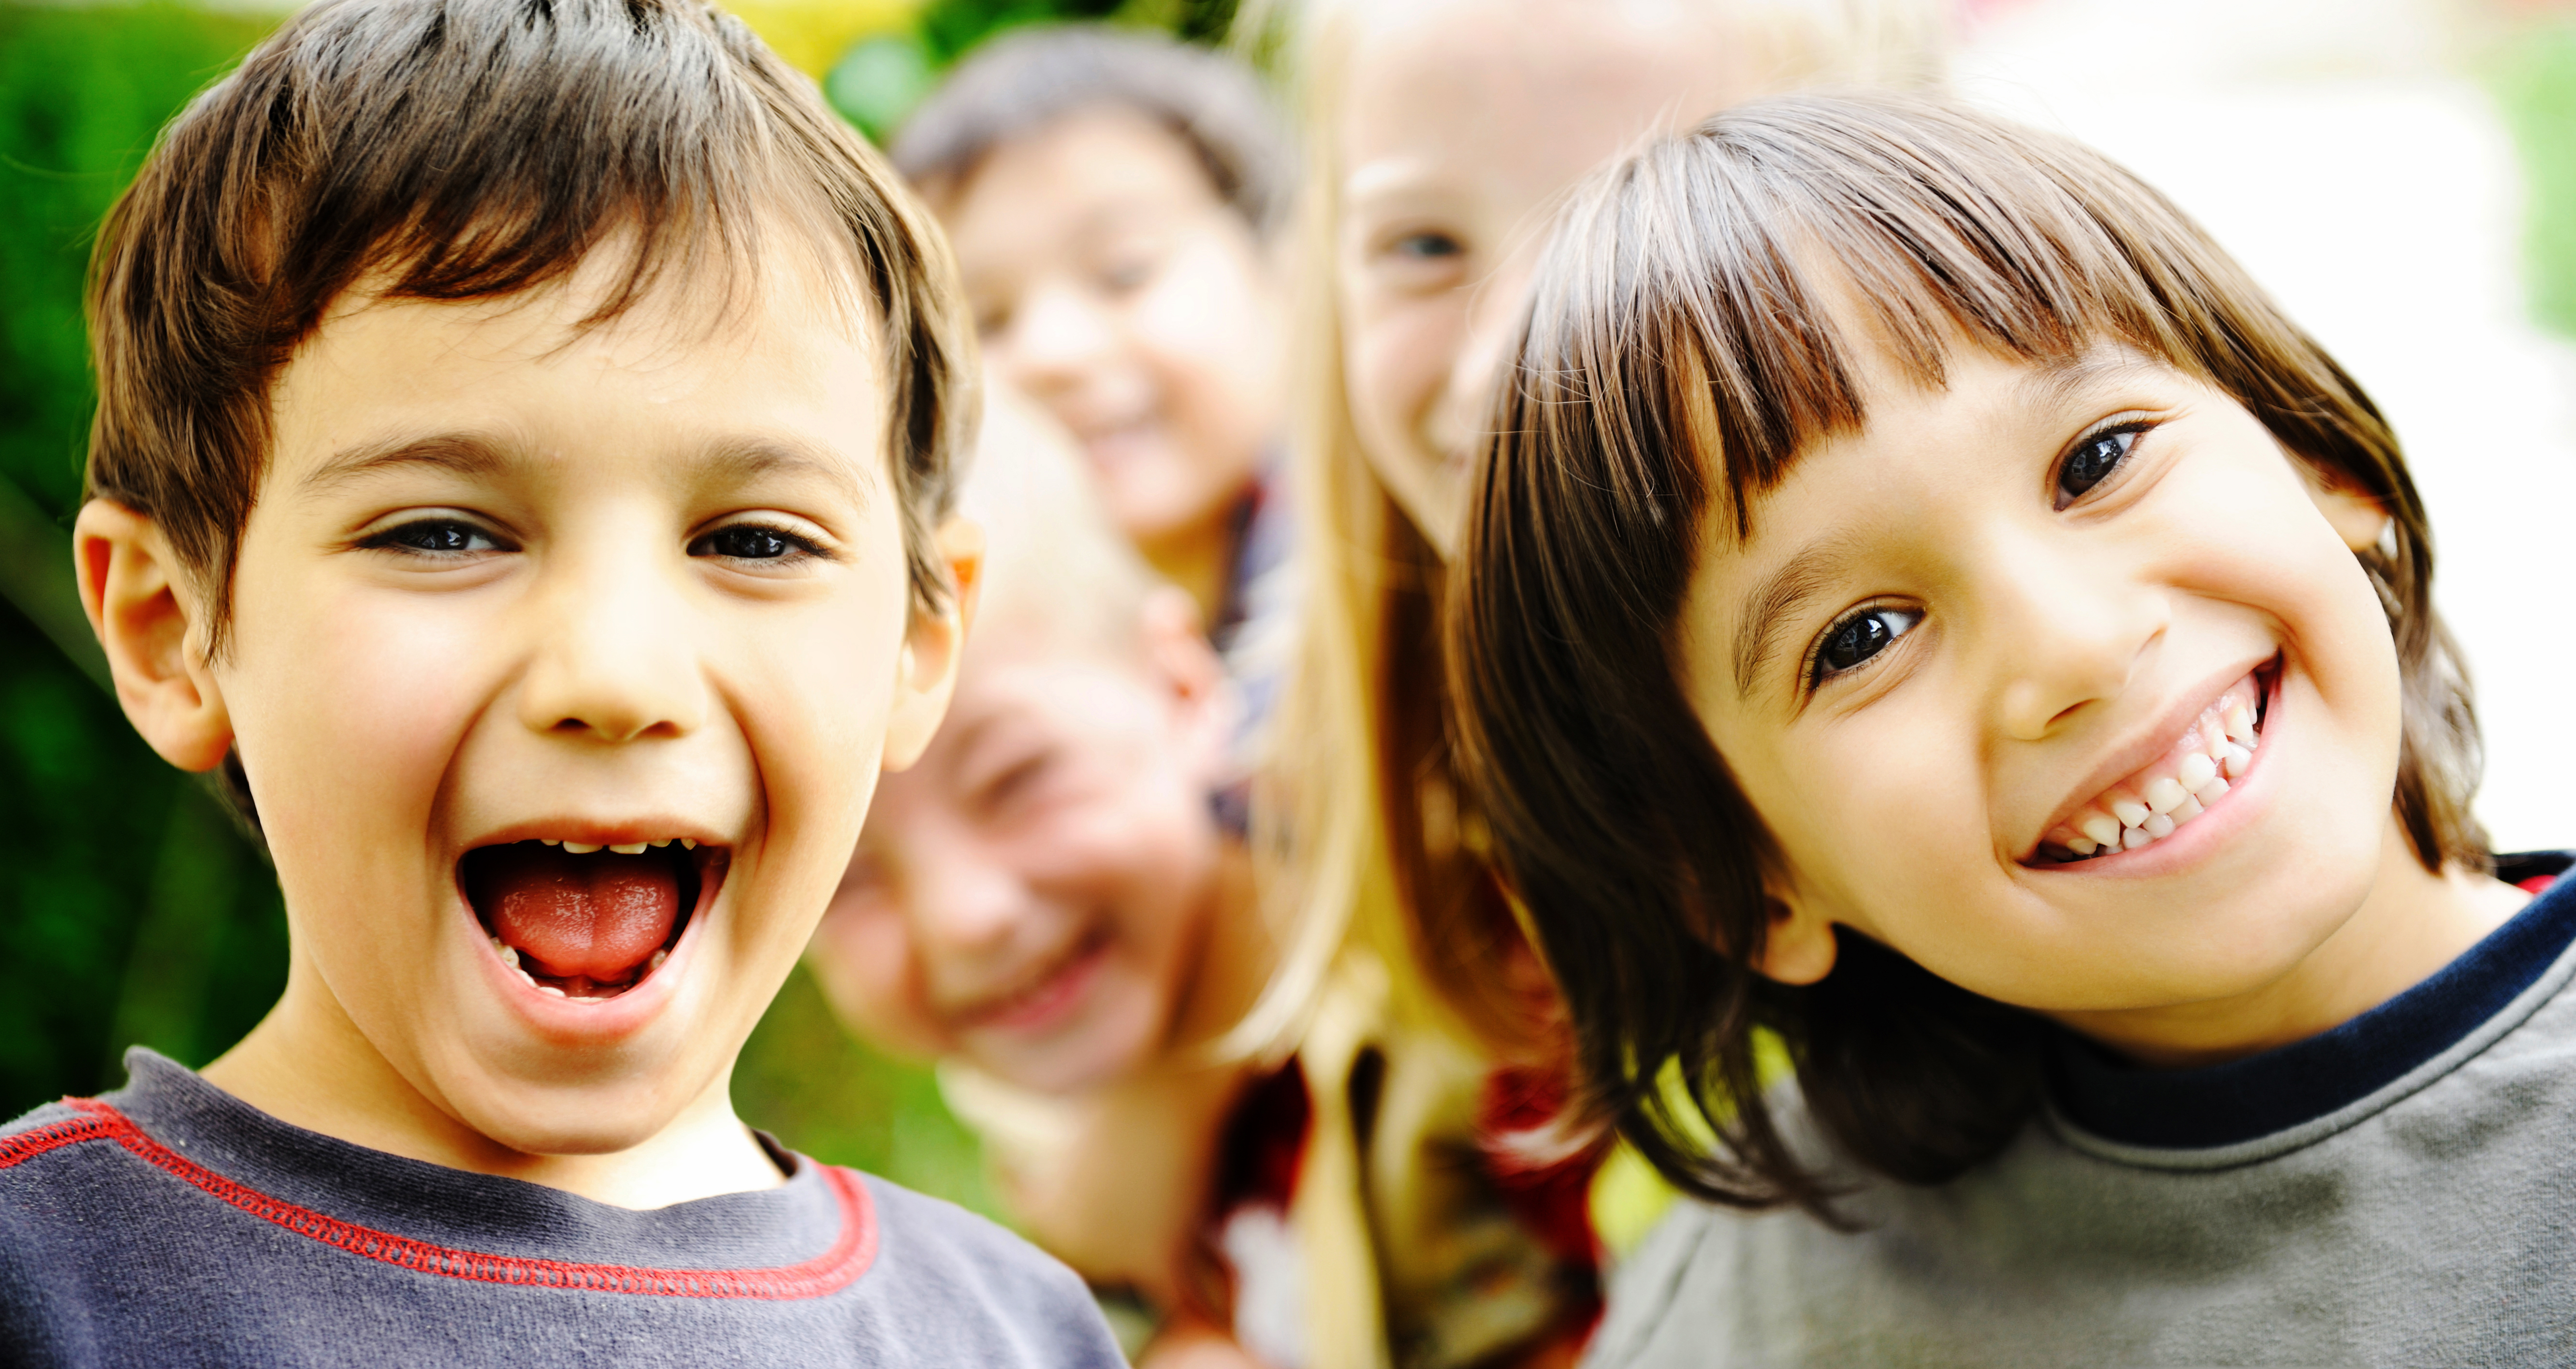 happiness-without-limit-happy-children-together-outdoor-faces-smiling-and-careless_BKRORaBi